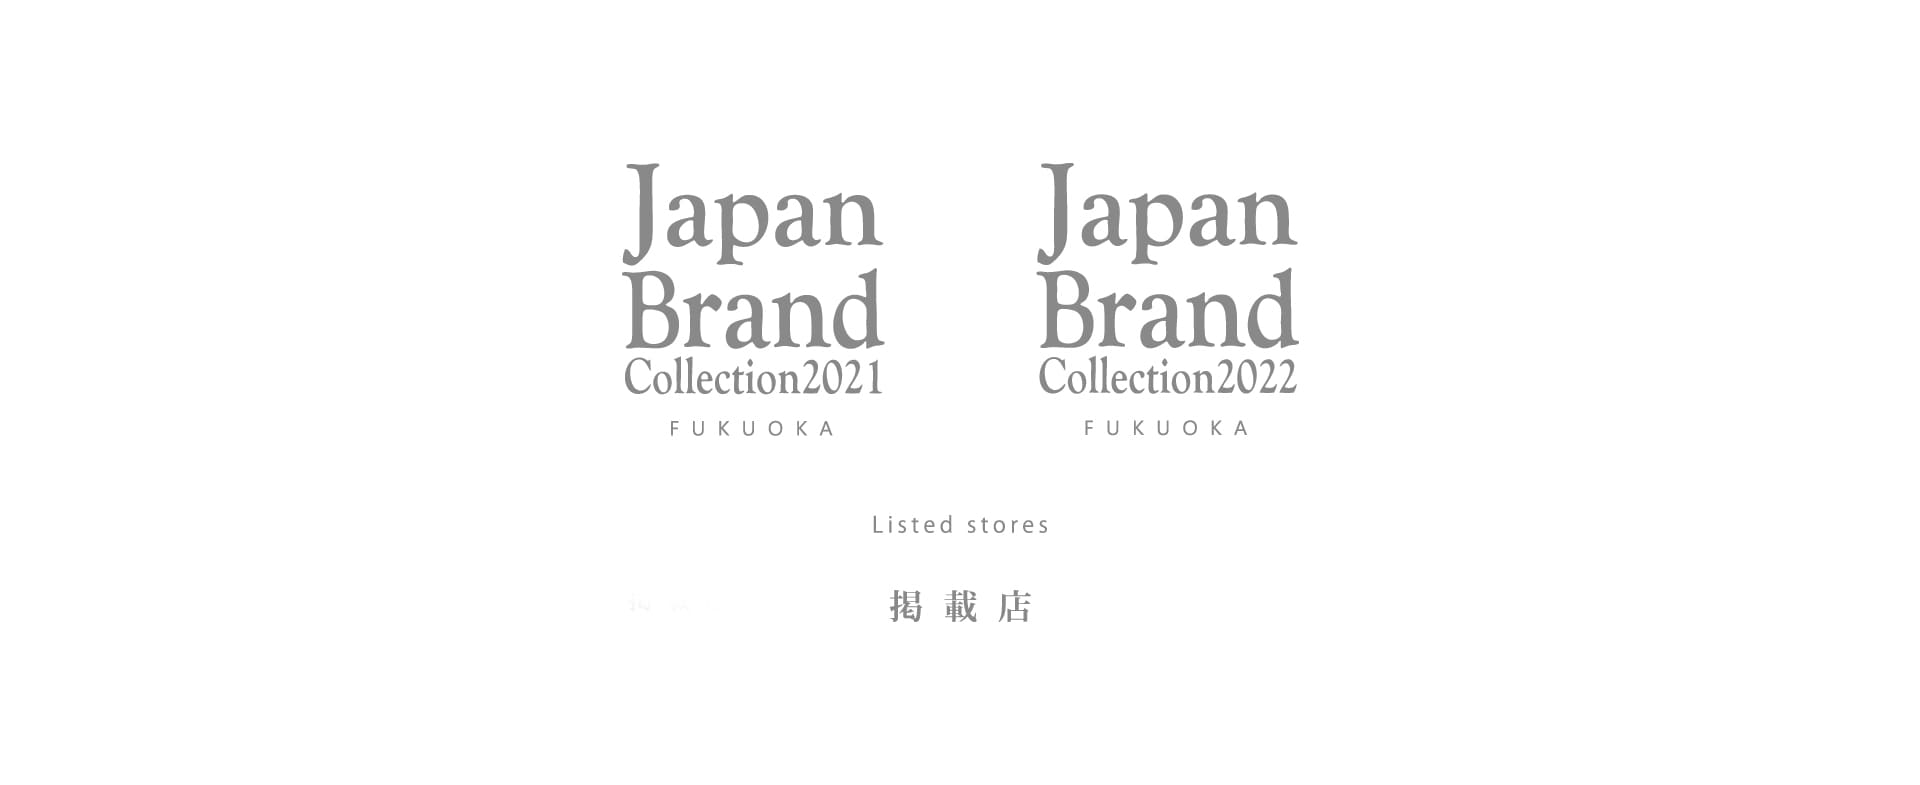 Japan Brand Collection 2021 福岡版 掲載店